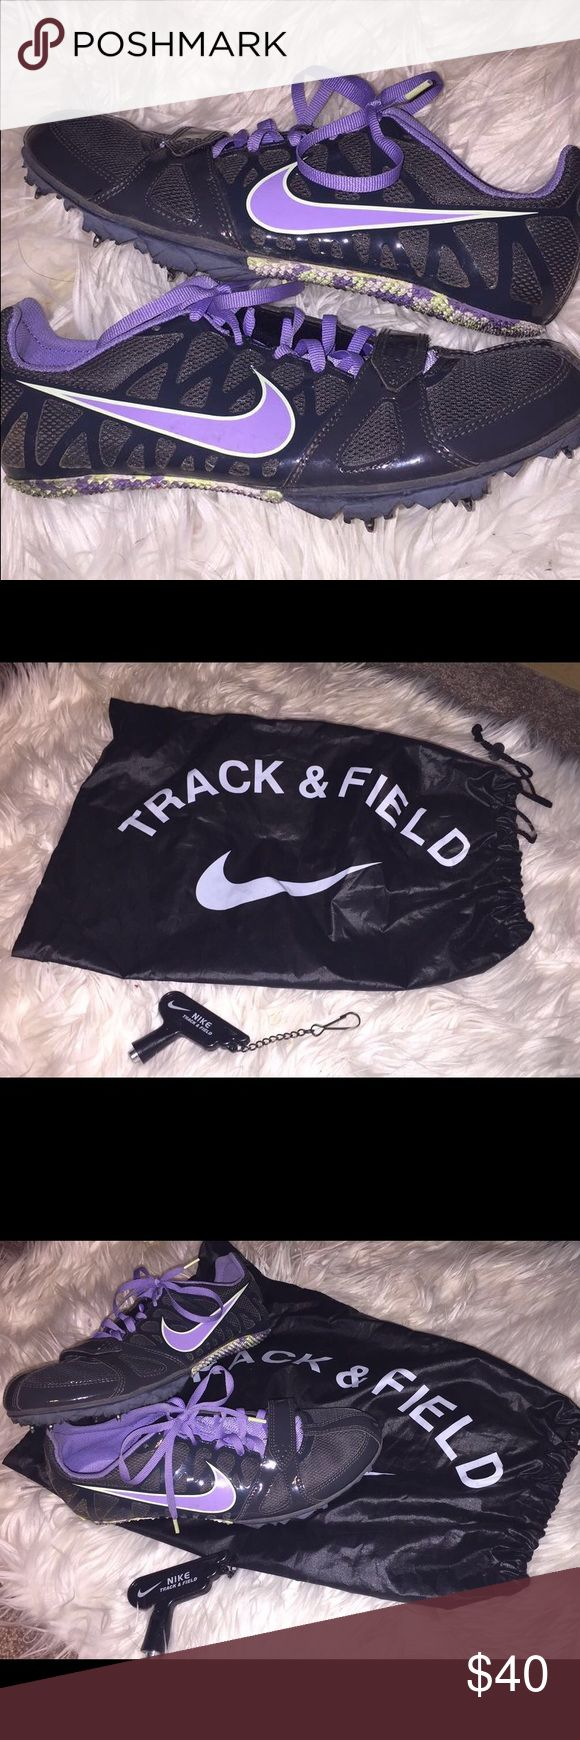 Nike spikes, spoke wrench, Nike track & field bag These Nike spikes were used for one track season in only a couple different events. They are super light weight and still look brand new. All spikes are included. Spoke wrench for removing spikes is also included along with the Nike track & field bag. Selling for best offering price! Nike Shoes Athletic Shoes